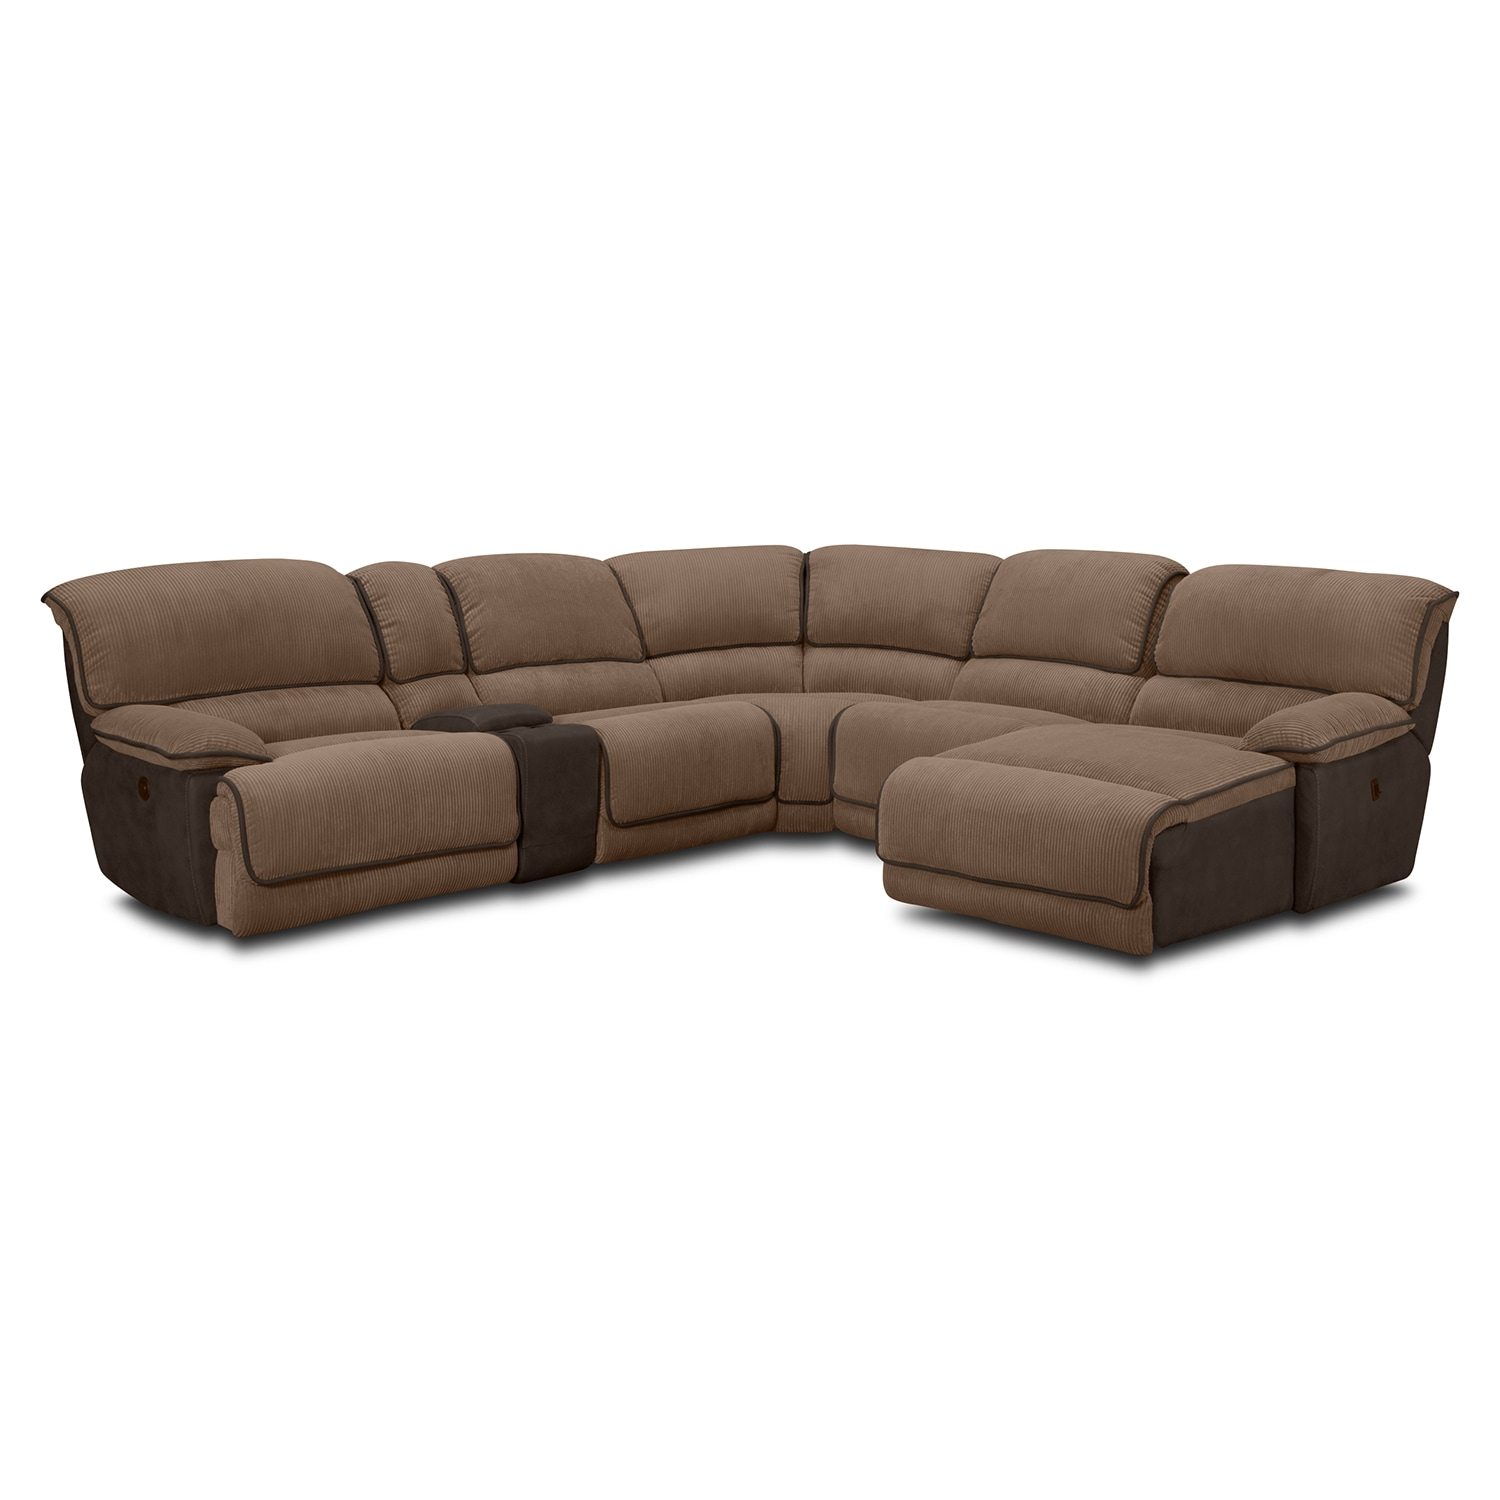 pact Childrens Sofa Bed together with 2 Seater Leather Recliner Sofa Sale moreover Top Reclining Sofas together with Homelegance Ashden Sofa Set Polyester Neutral 8313 SOFA SET P 77489 together with Vintage Stanley Furniture Mid Century Modern. on power sectional sofa